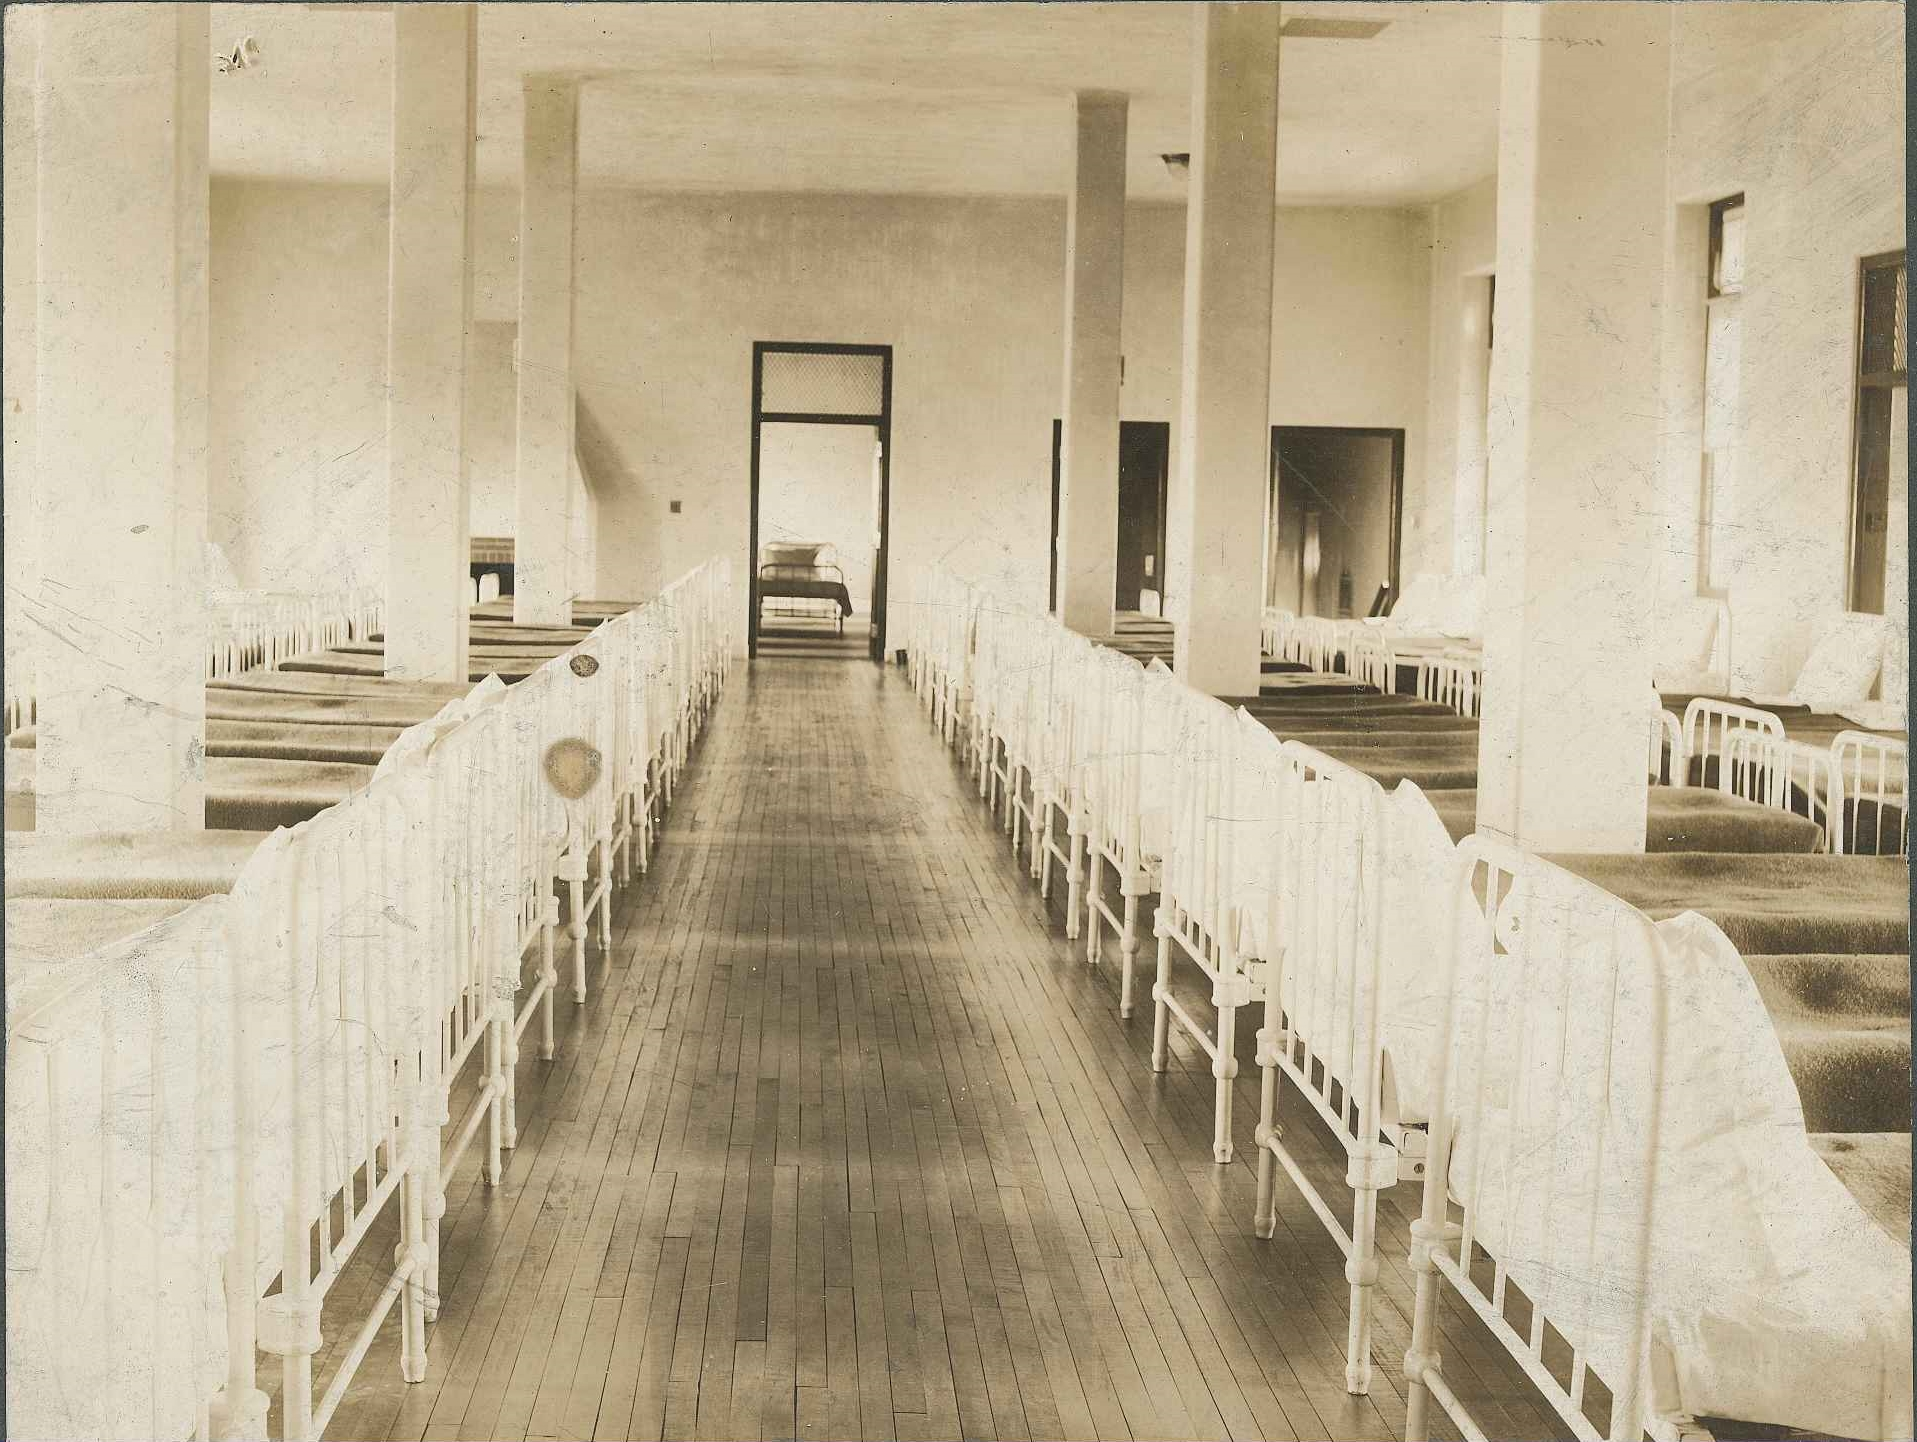 Criminal. Insane. A Long History of Farview State Hospital – Another Century